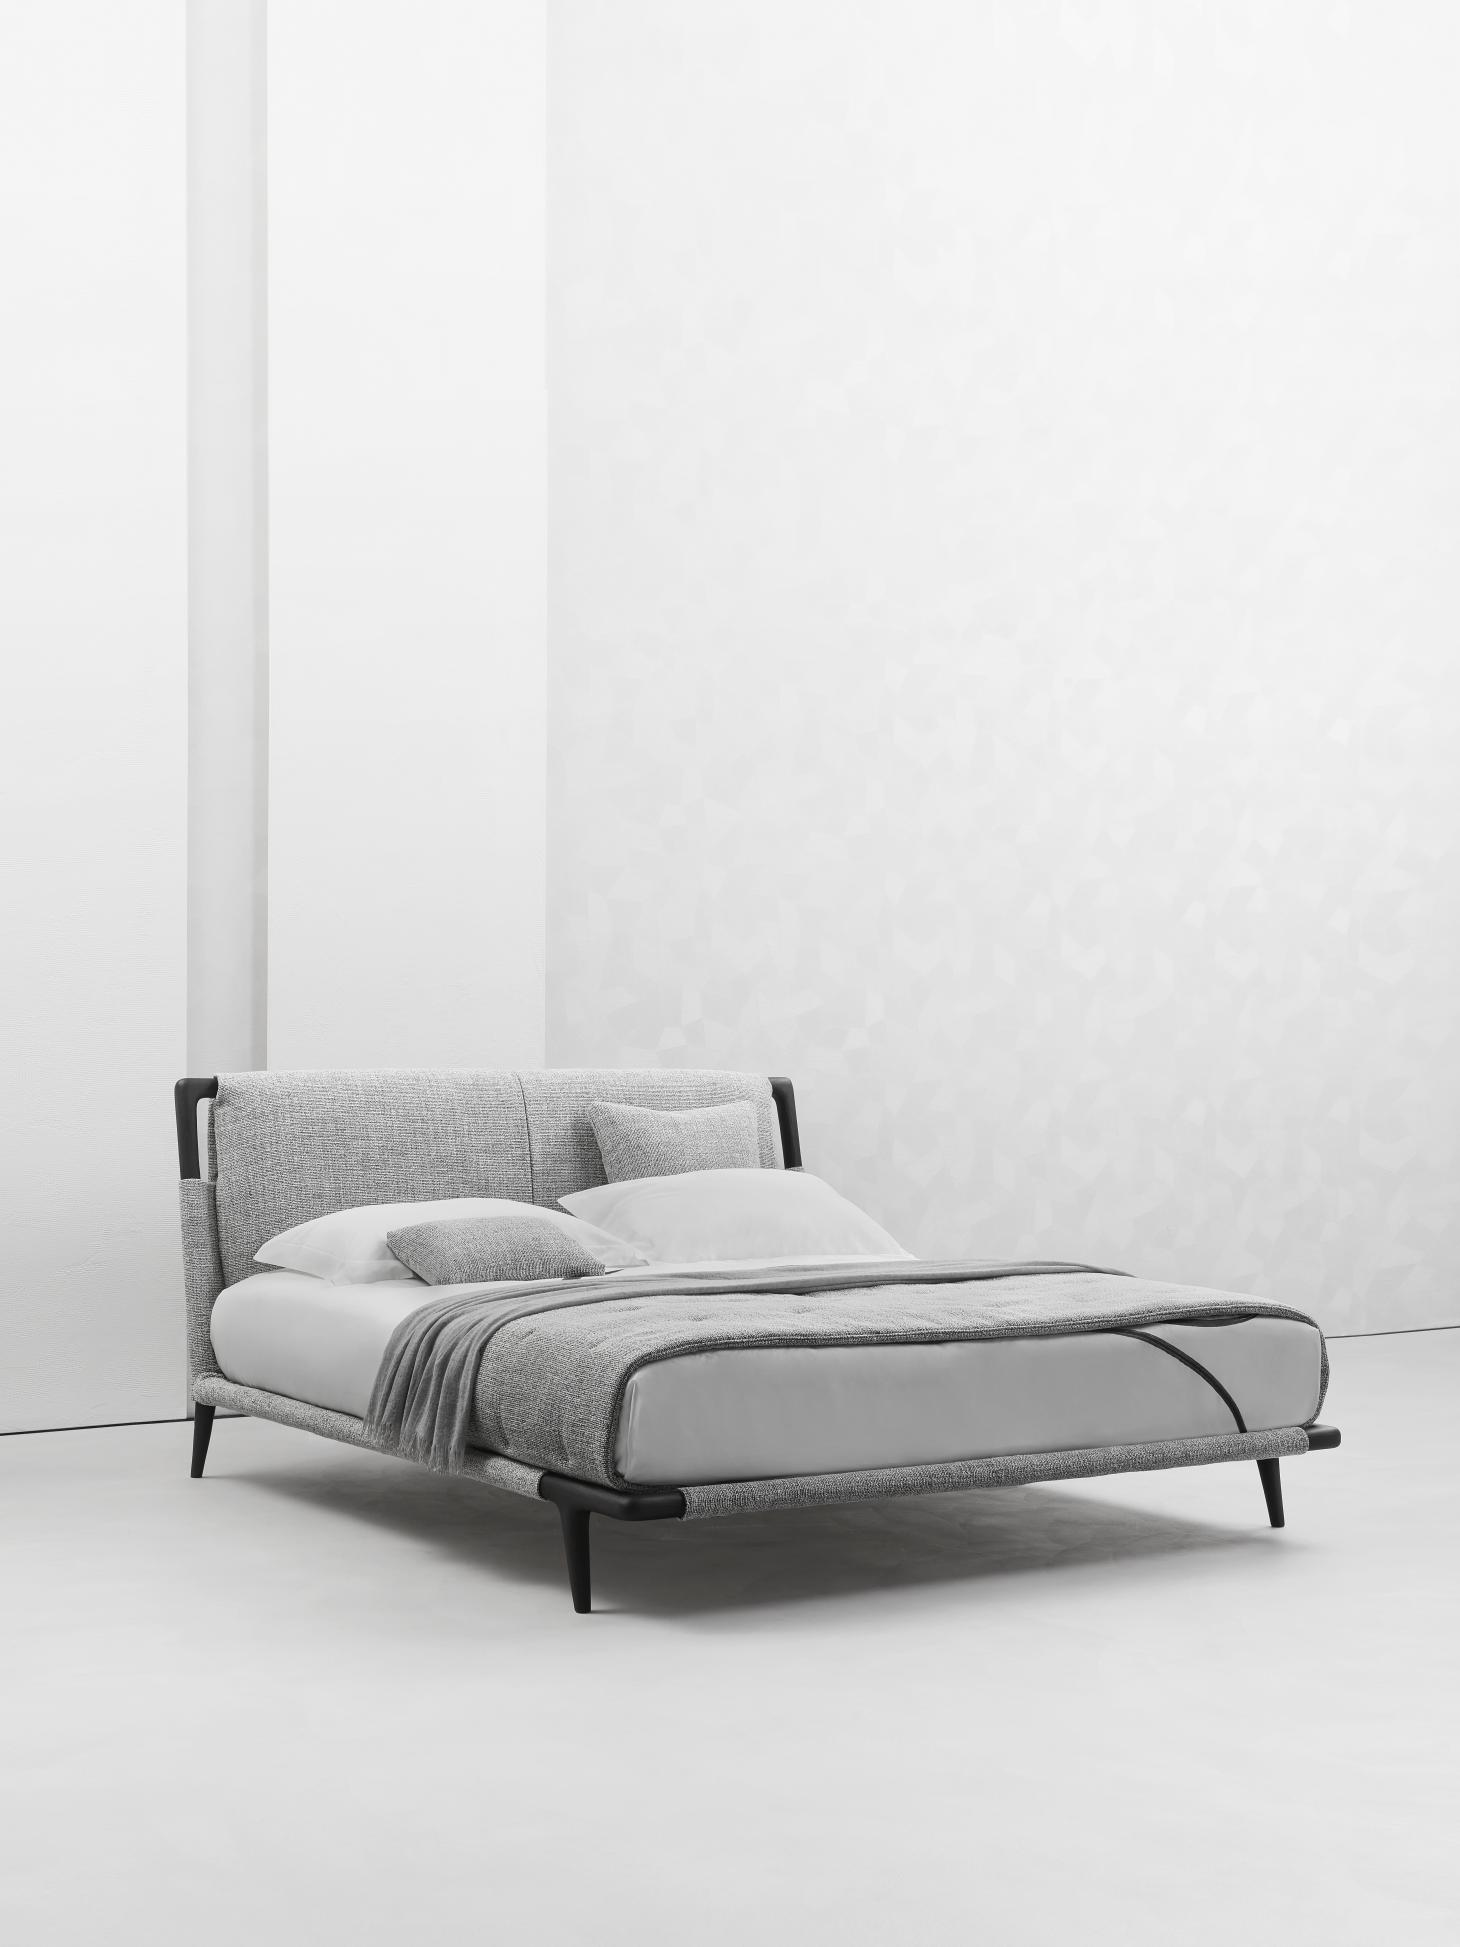 Best Bed from the Wallpaper* Design Awards